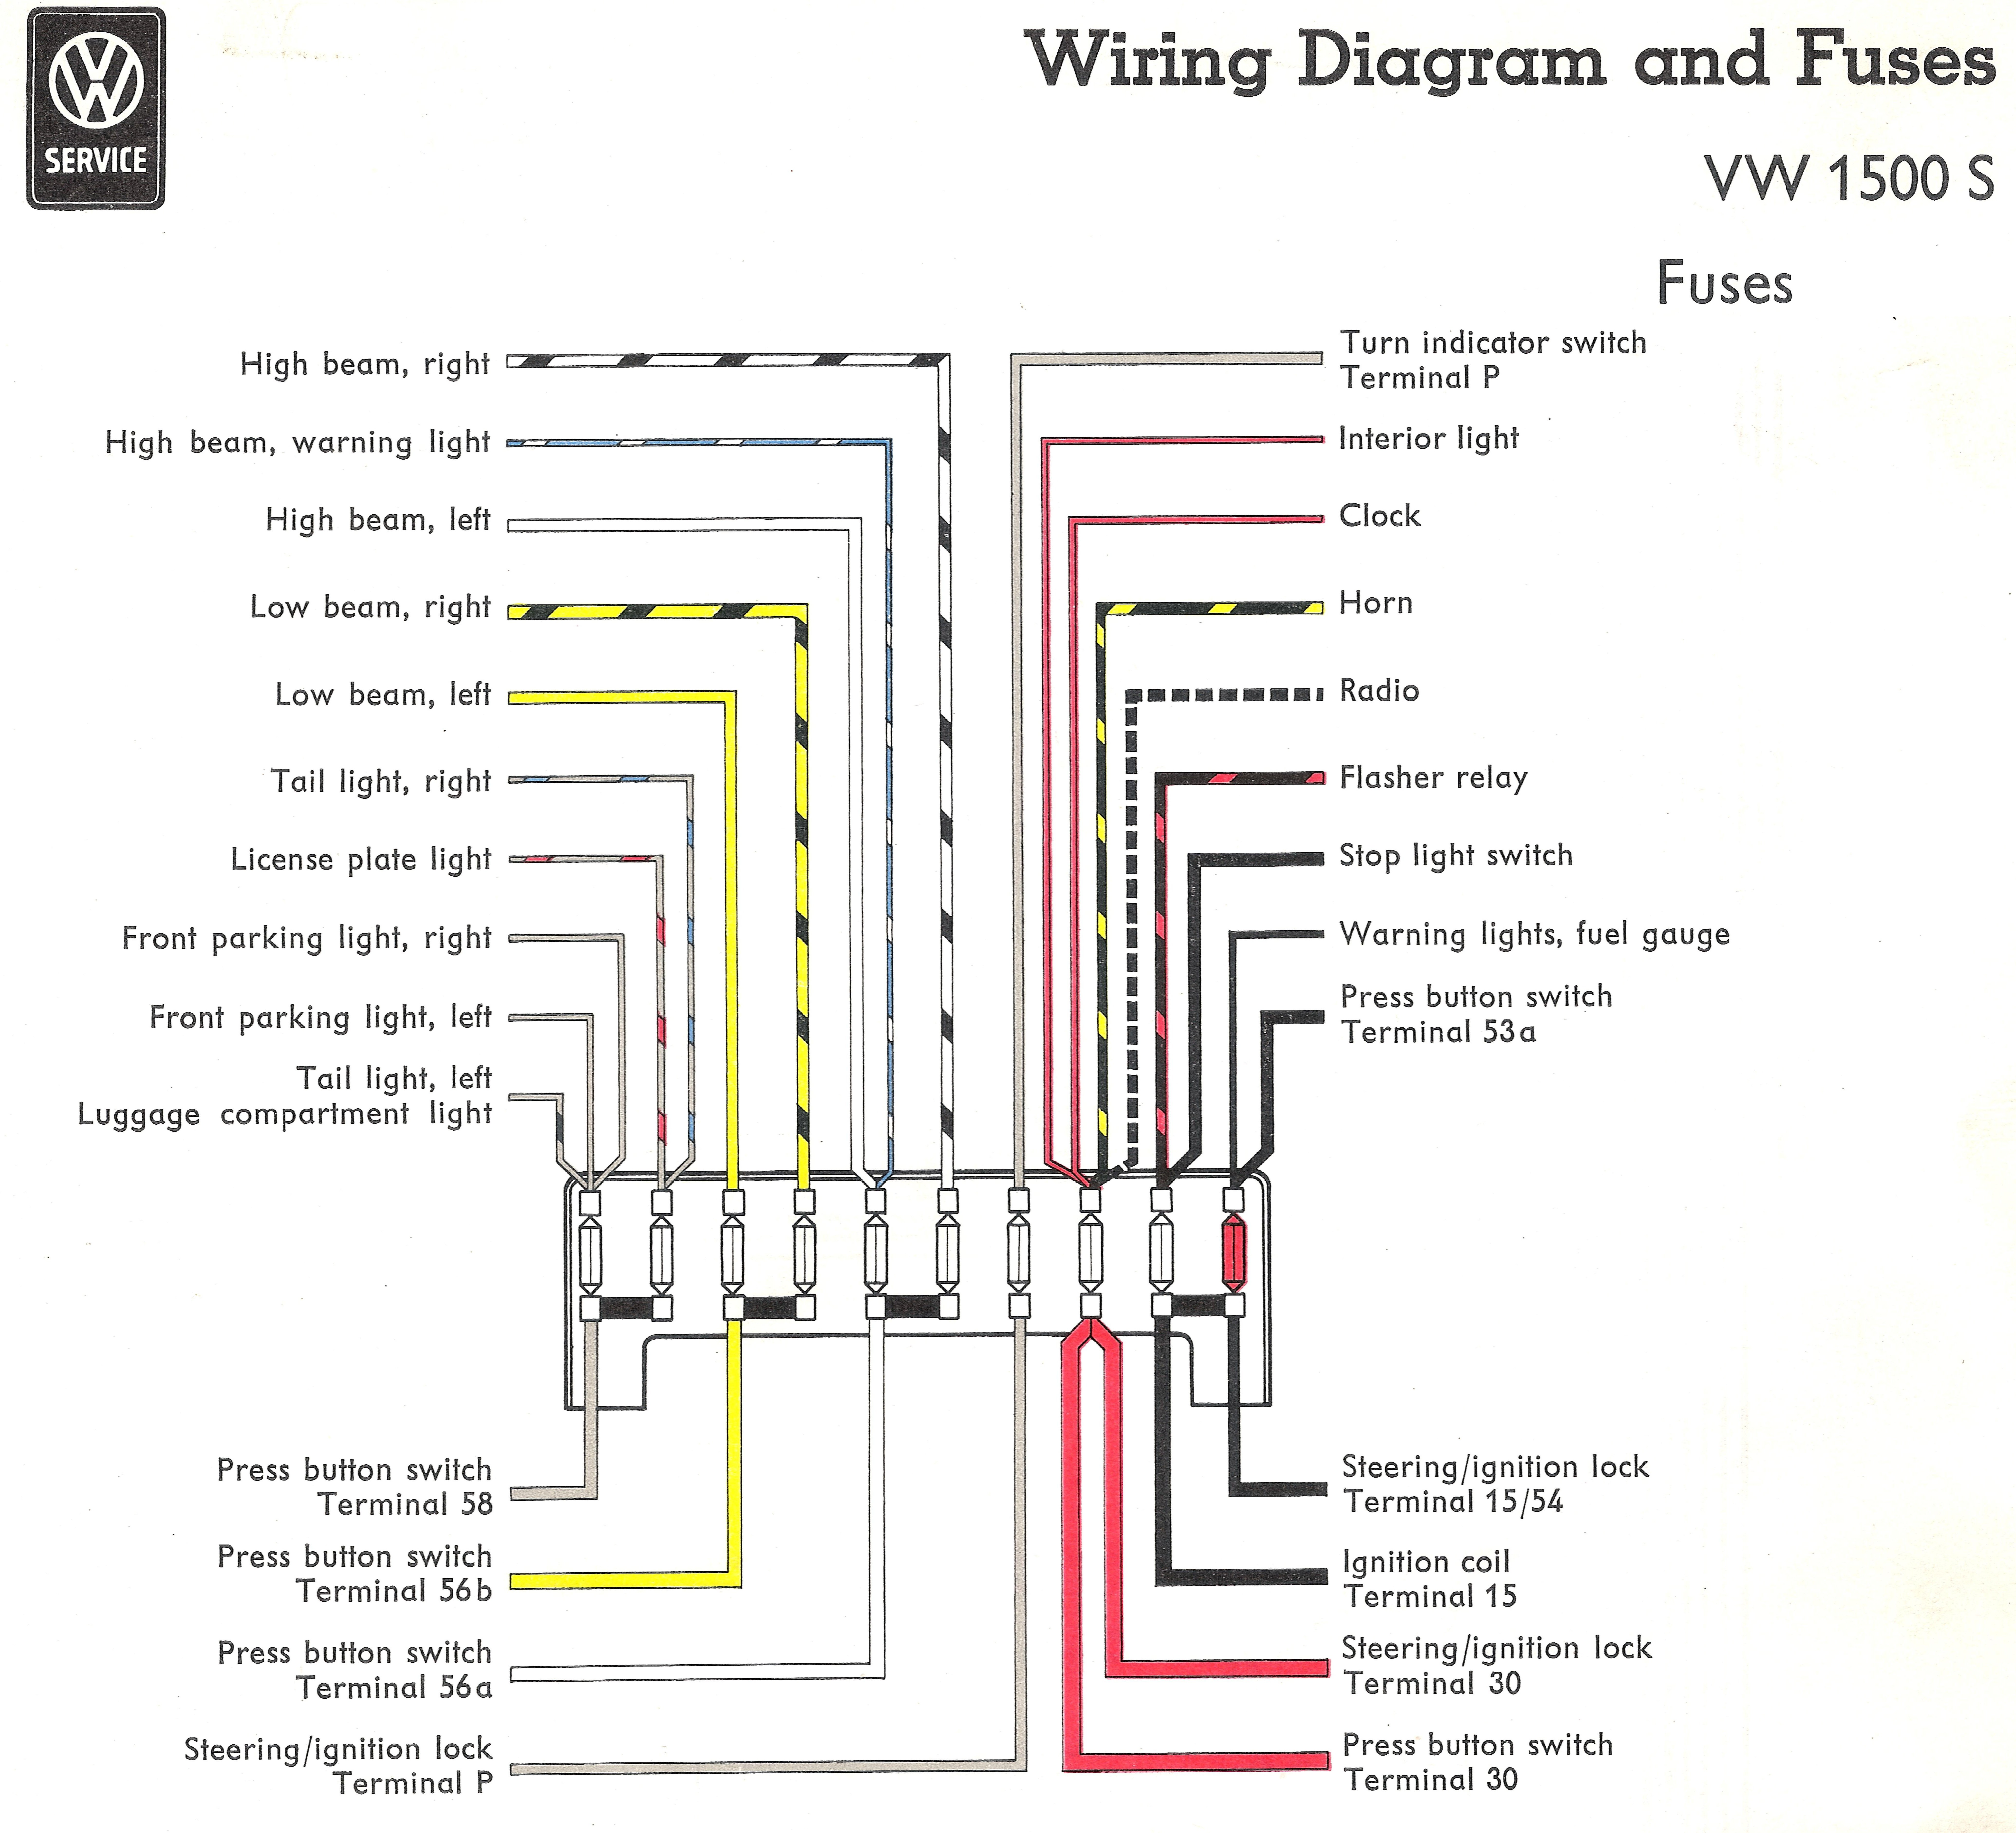 type3_1500s fuse 1200dpi thesamba com type 3 wiring diagrams fuse panel wiring diagram at webbmarketing.co